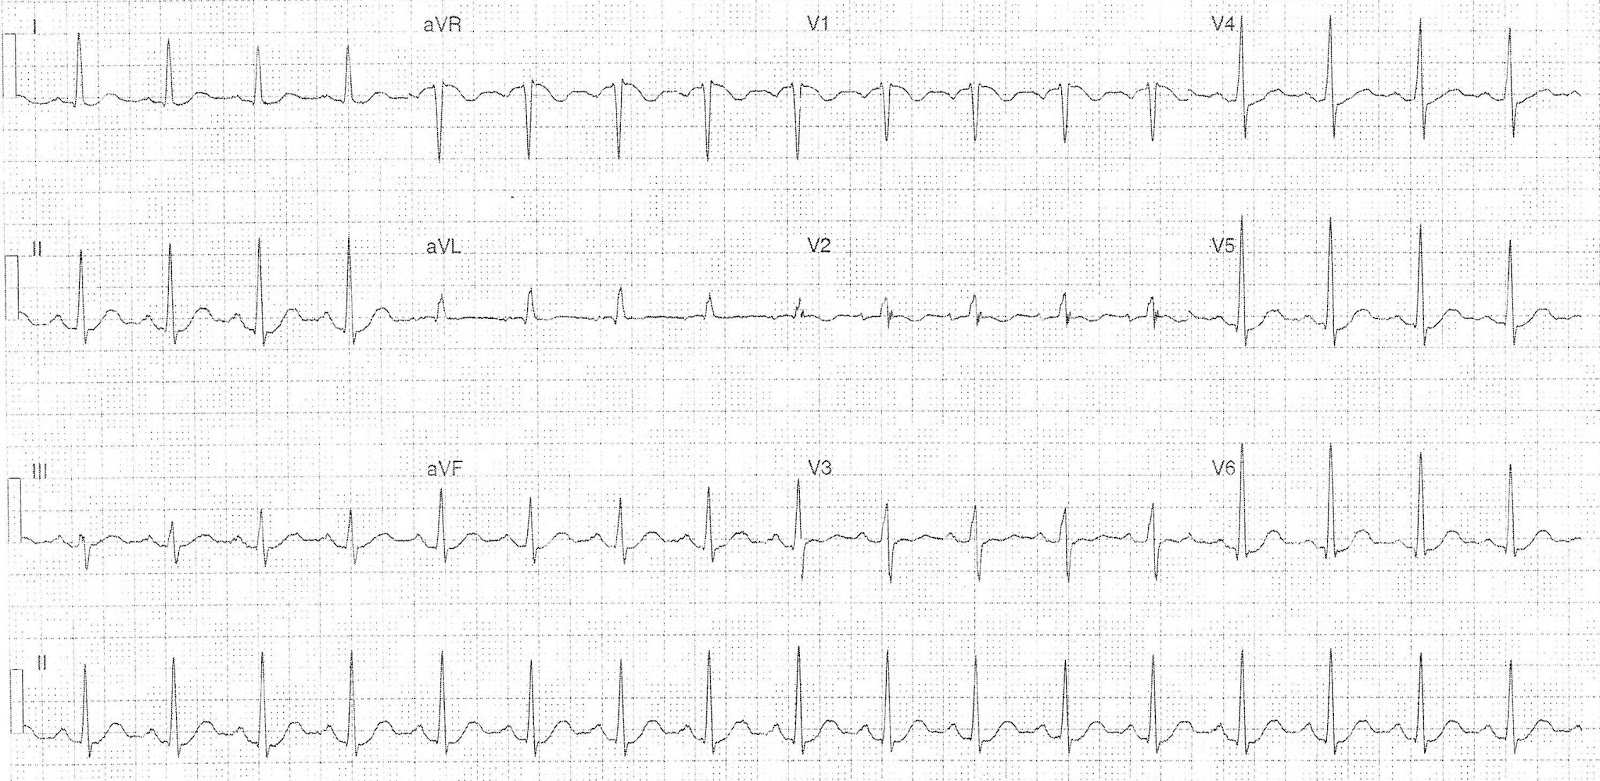 Pulmonary And Pericardial Ecg Quest